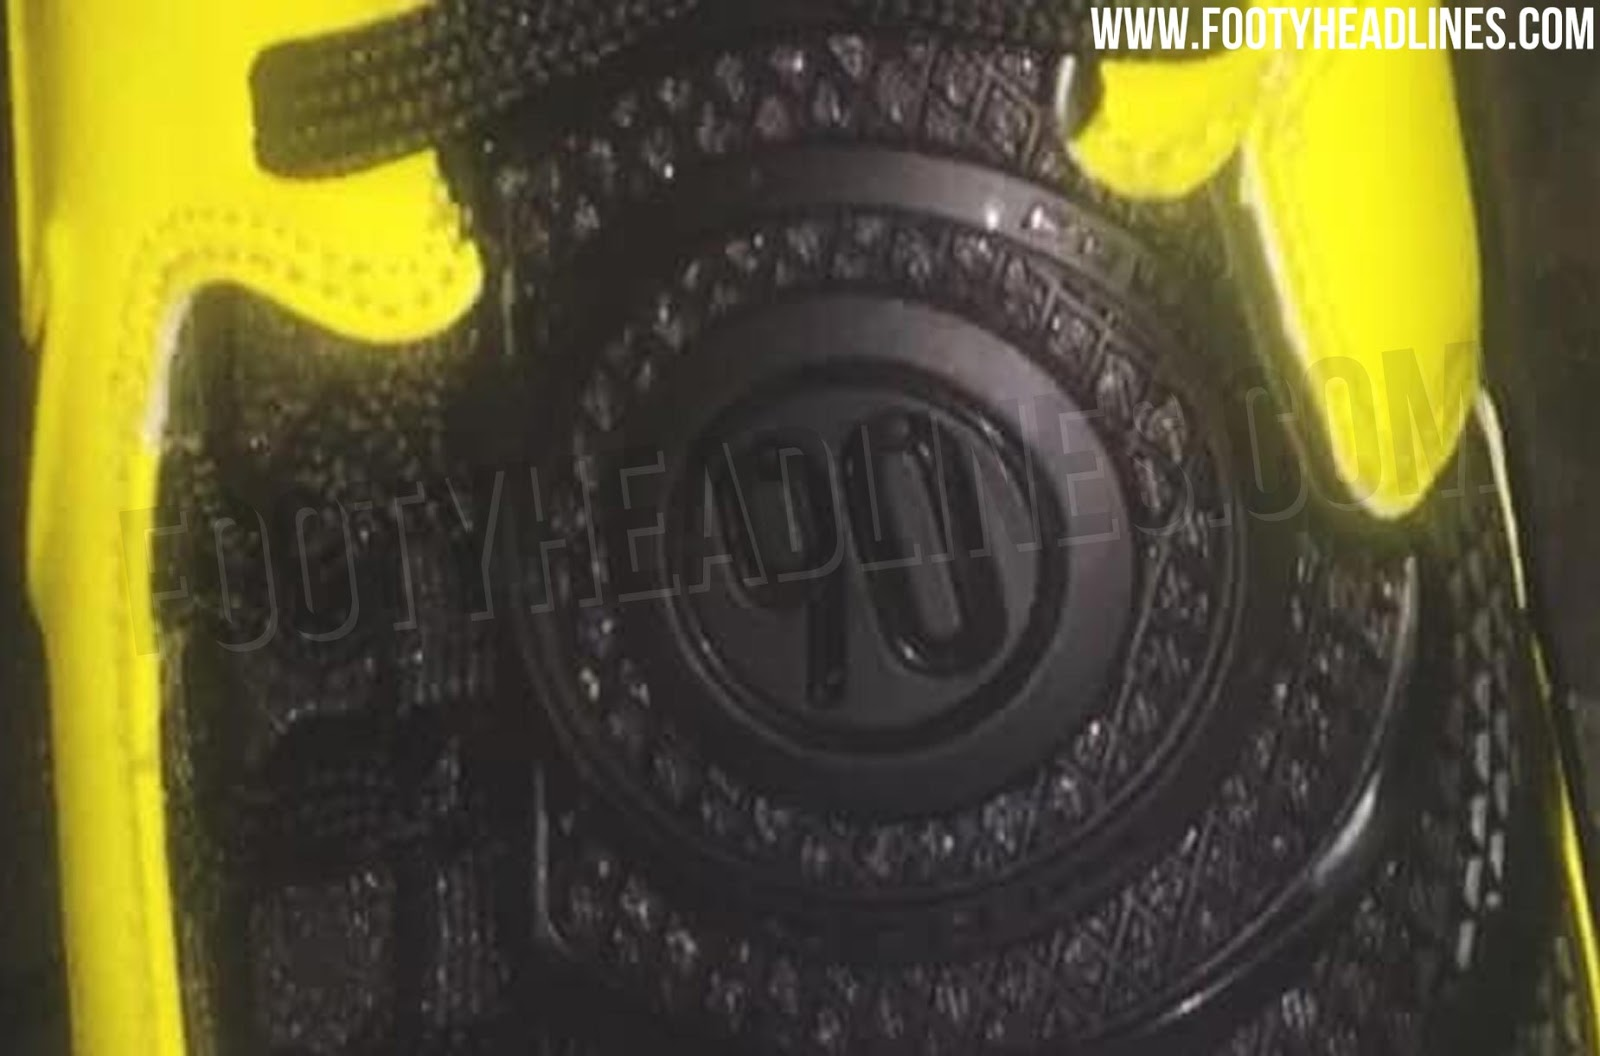 66d5e475ec7c3 New Picture - Nike Total 90 Laser Remake Boots Leaked